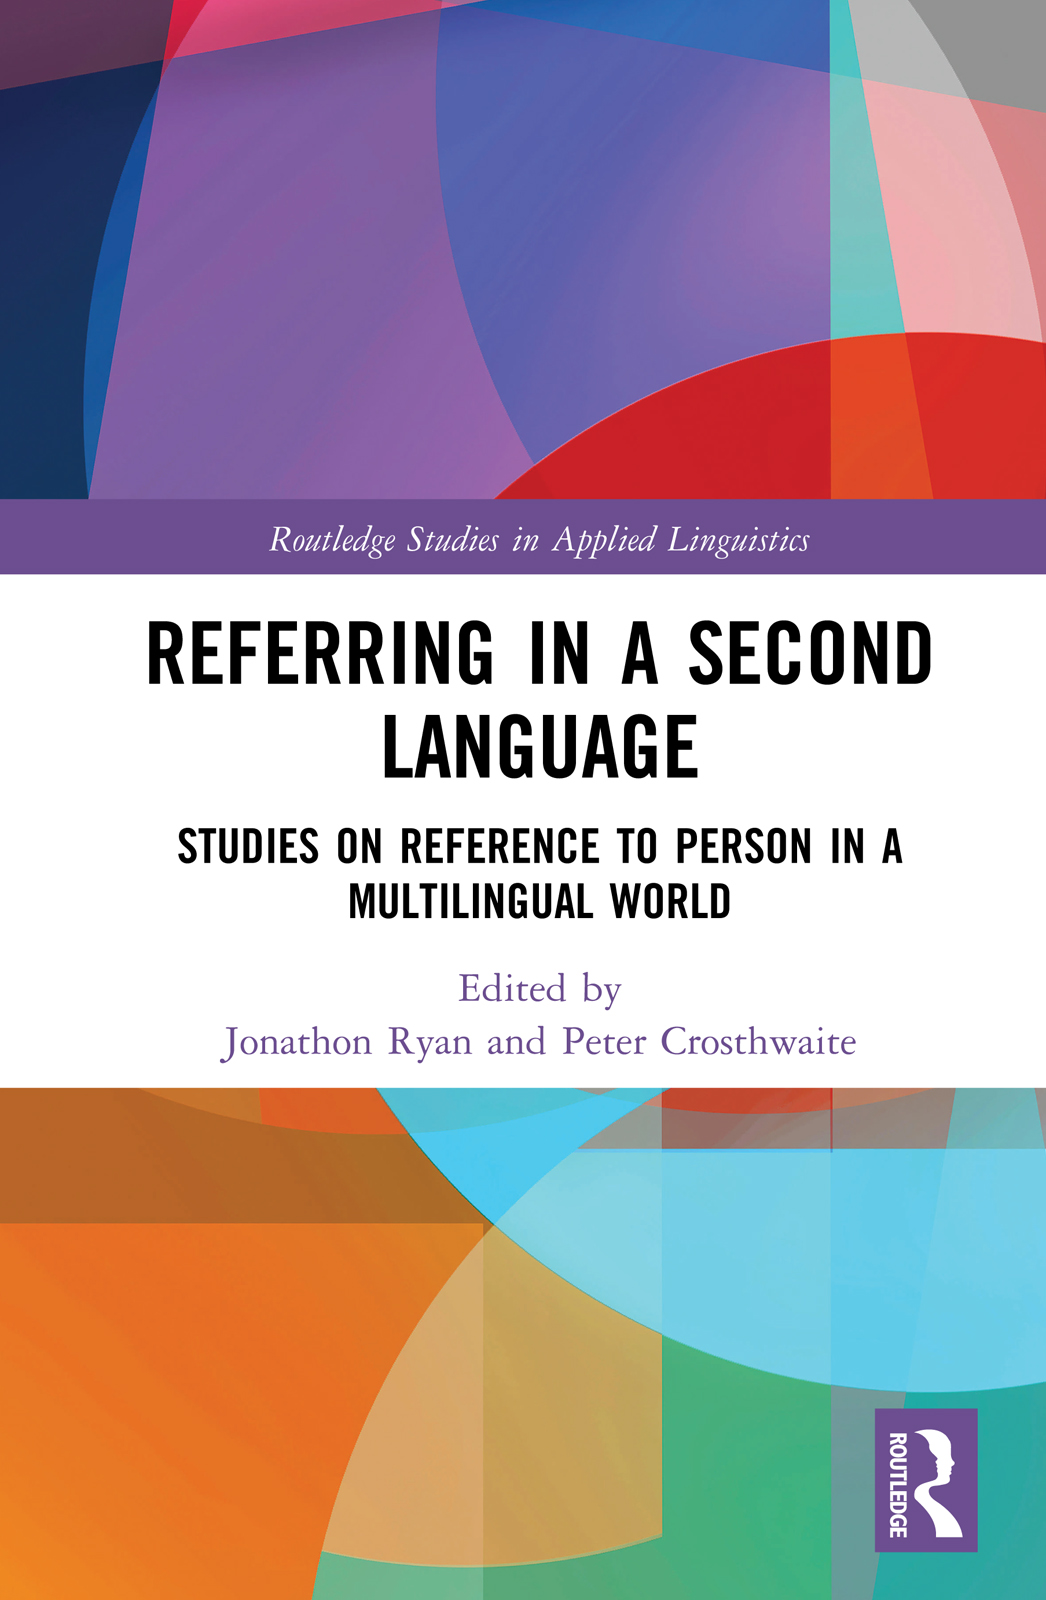 Referent introducing strategies in advanced L2 usage